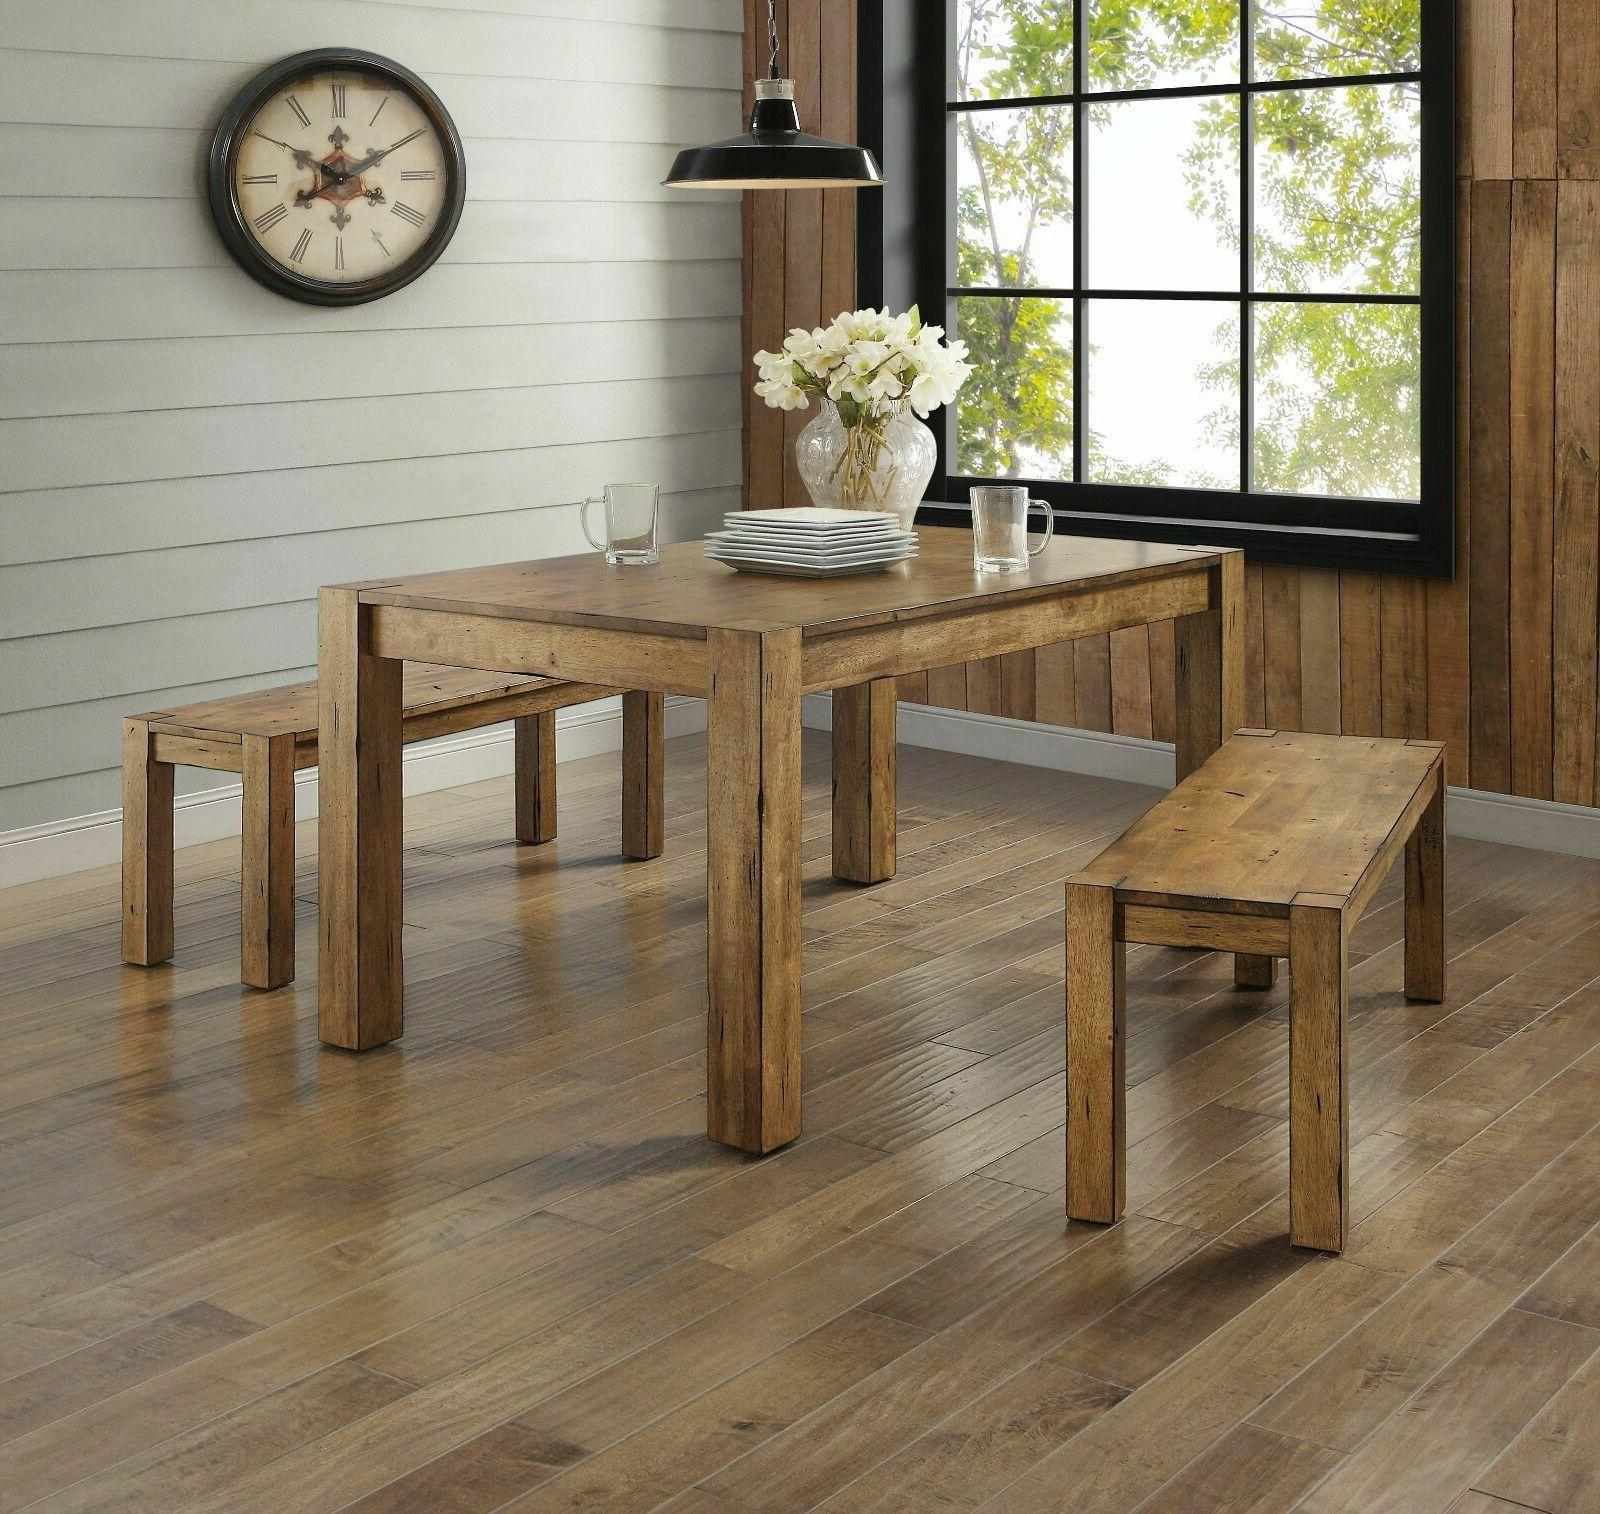 Dining Room Table Set Kitchen Tables Wood Bench Furniture Ru